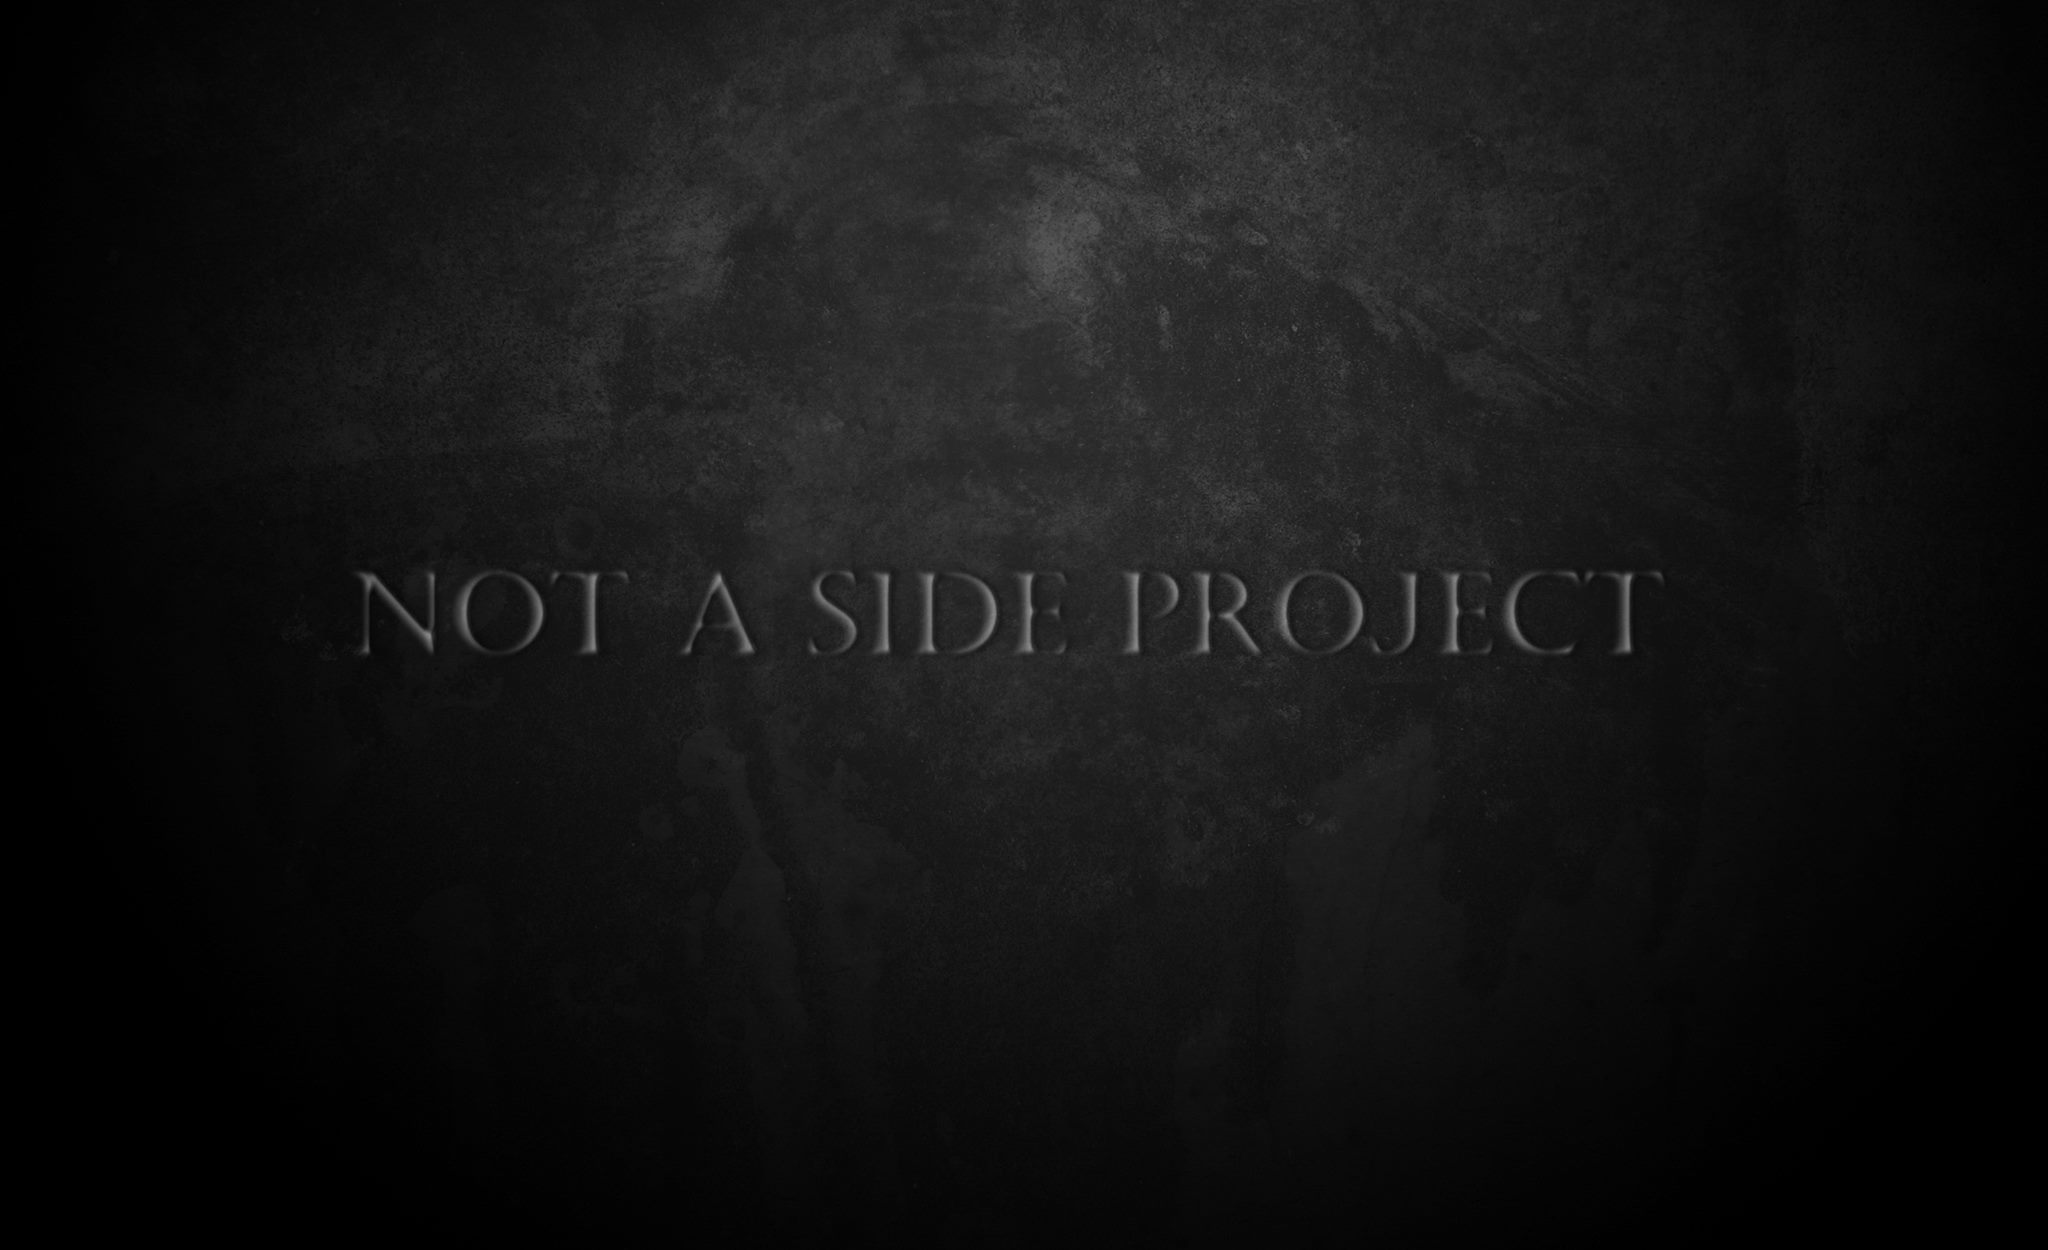 Not A Side Project